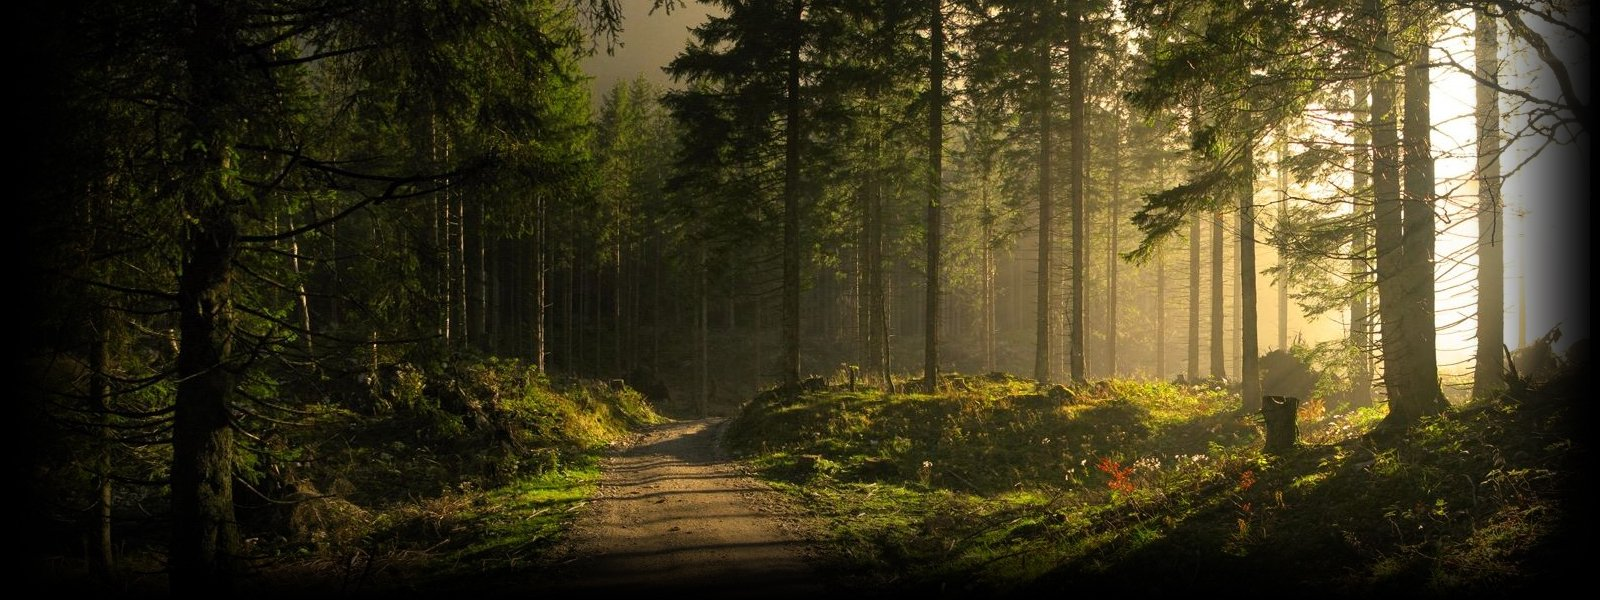 doublewide_forest_road.jpg